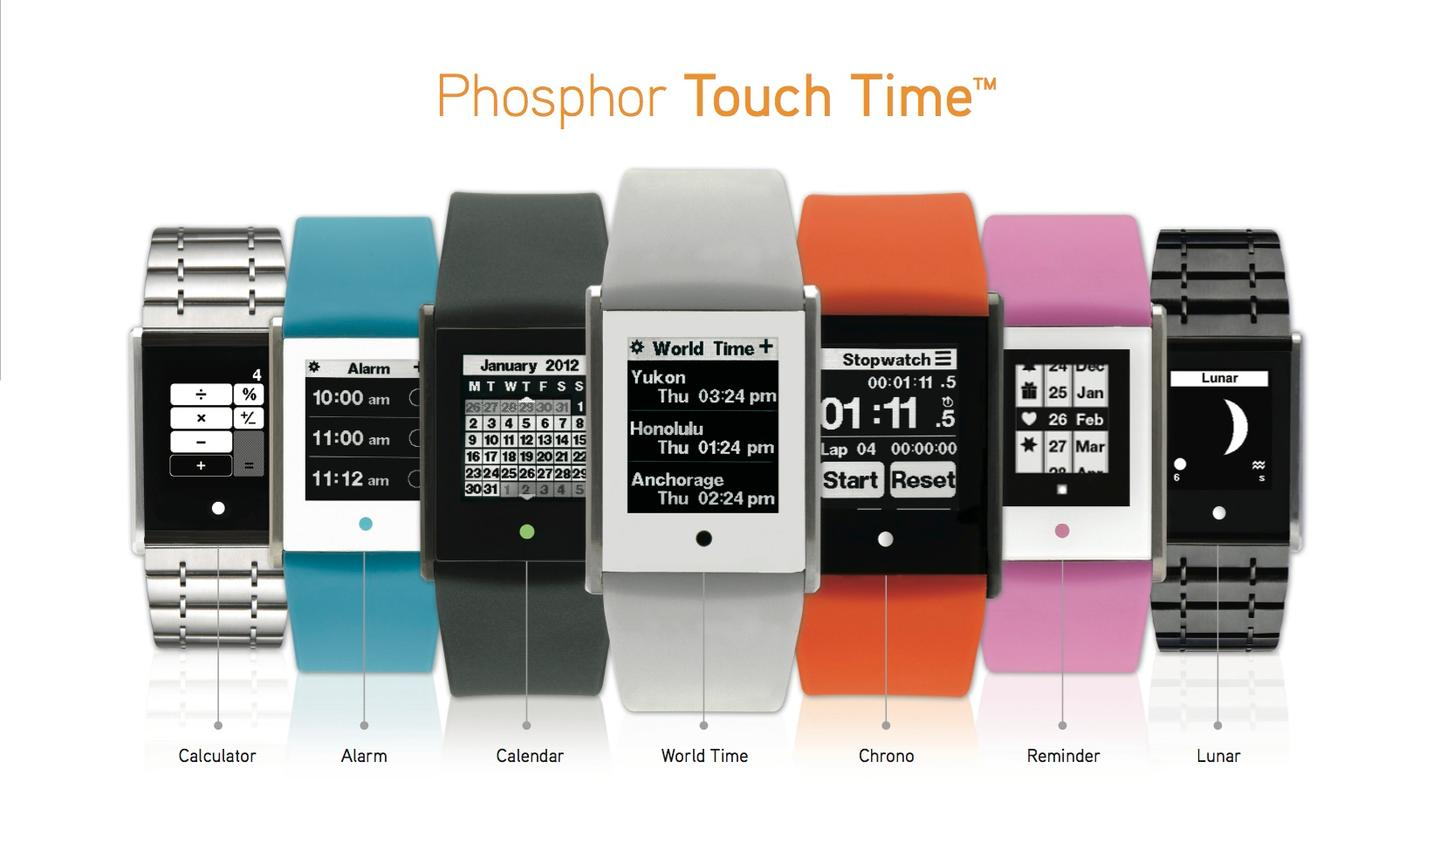 Touch Time integrates style with innovation in watch design